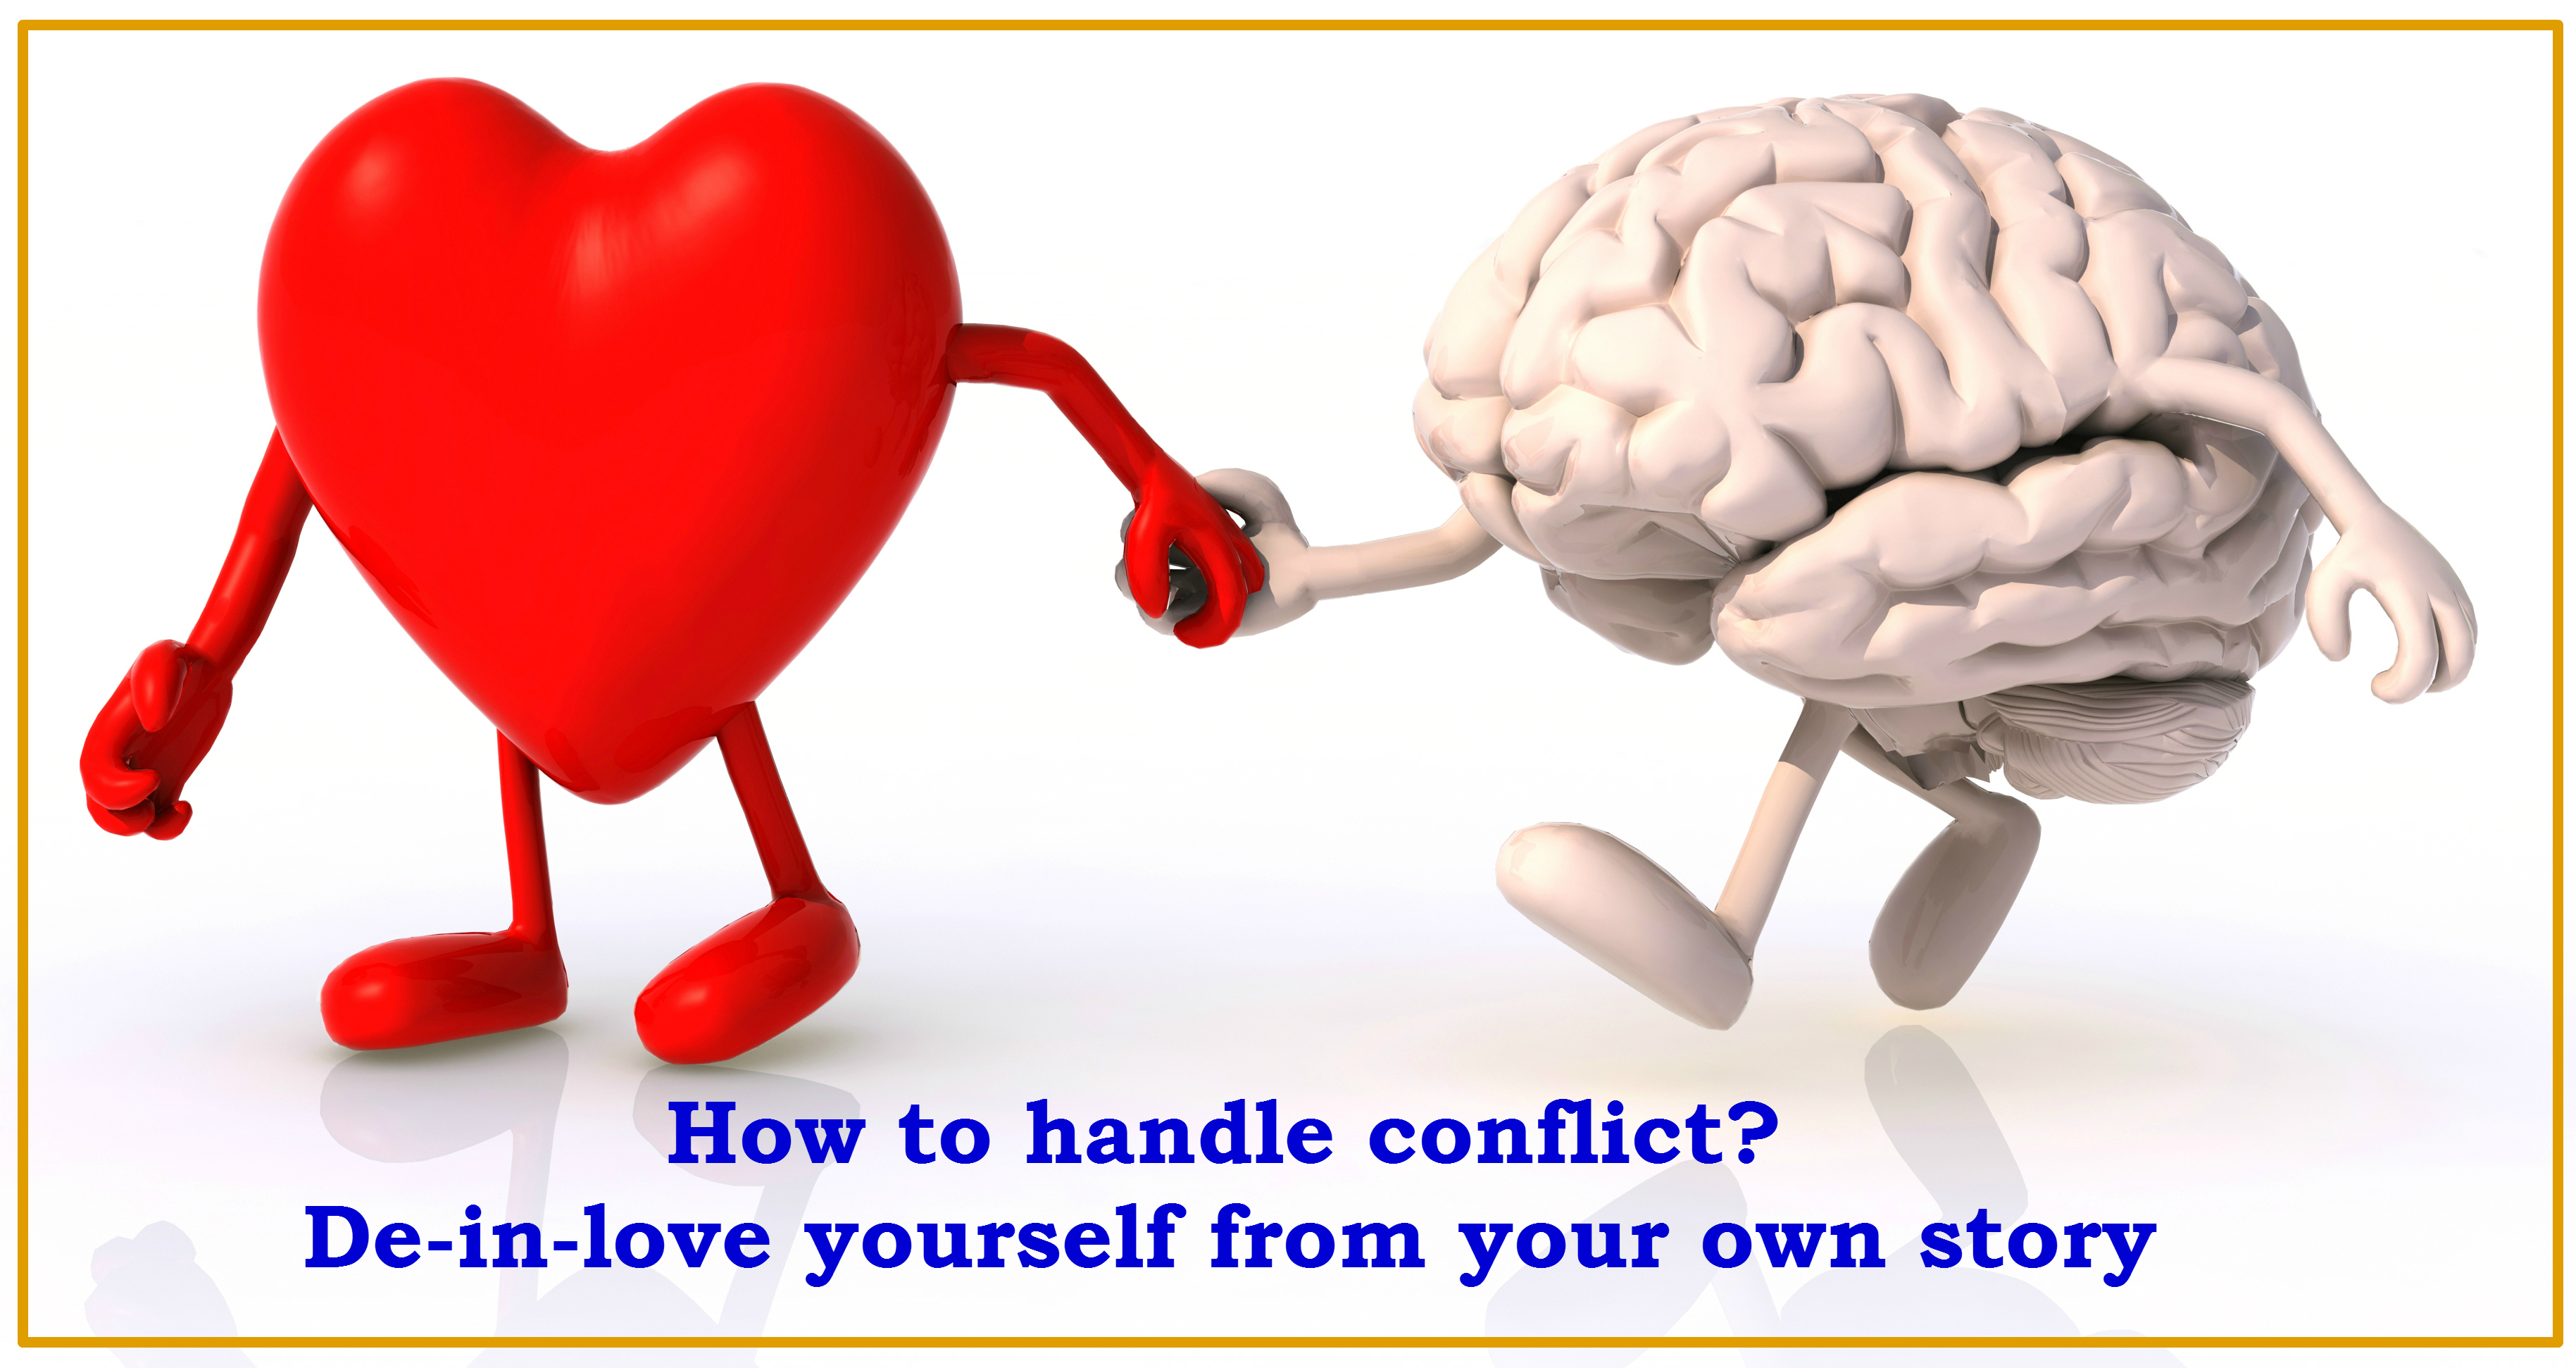 How to resolve conflict? De-in-love yourself from your own story